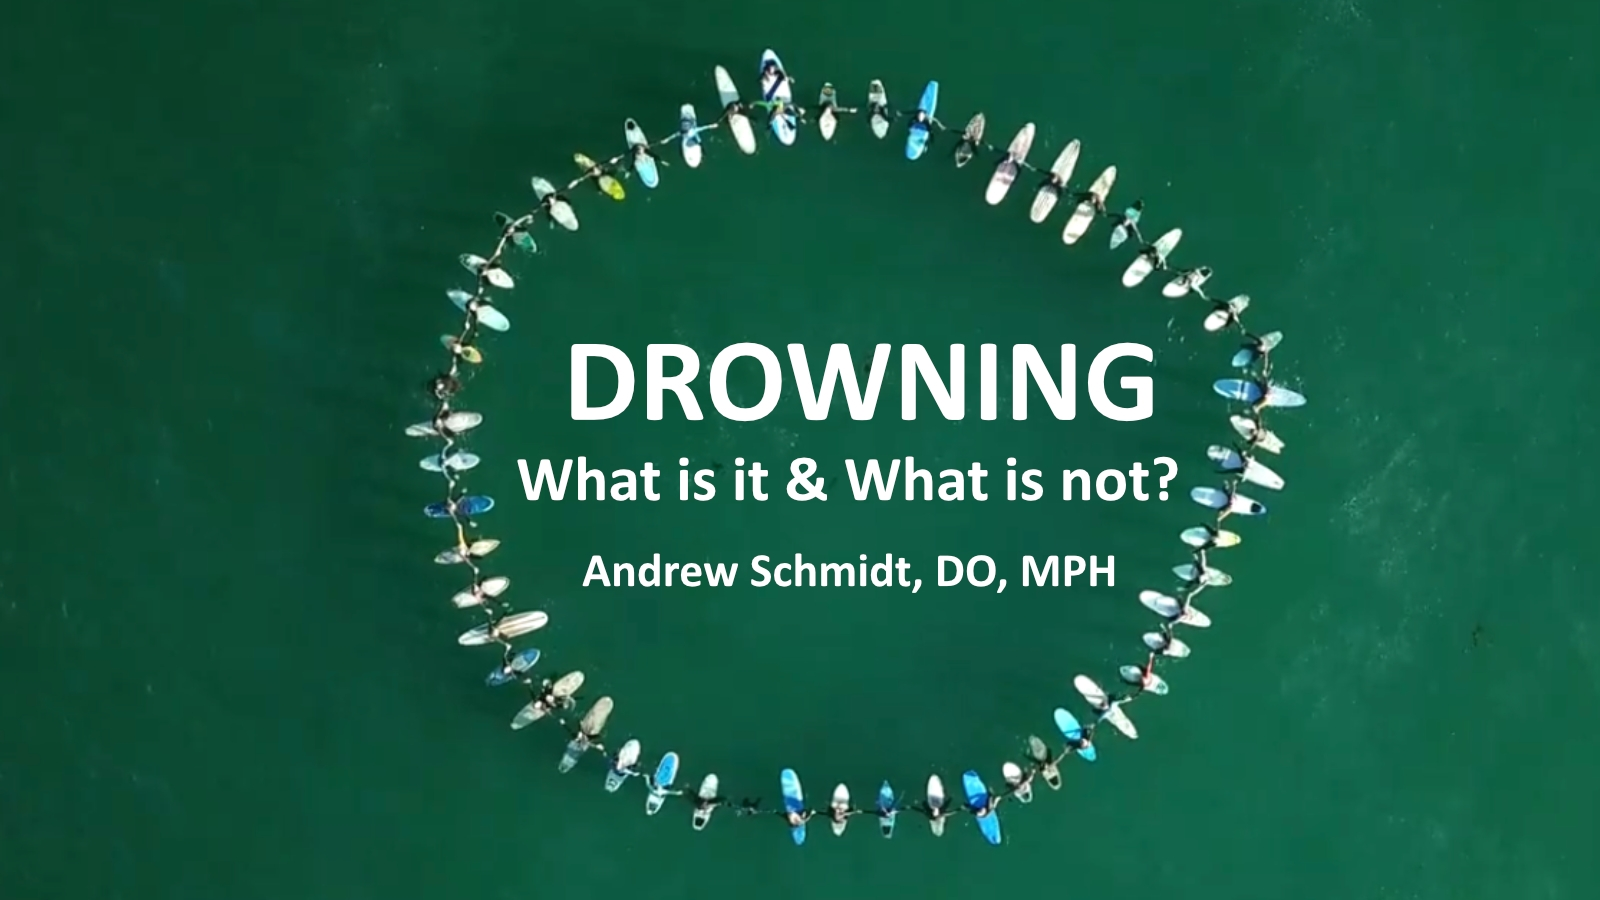 Drowning: What is it and what is it not?